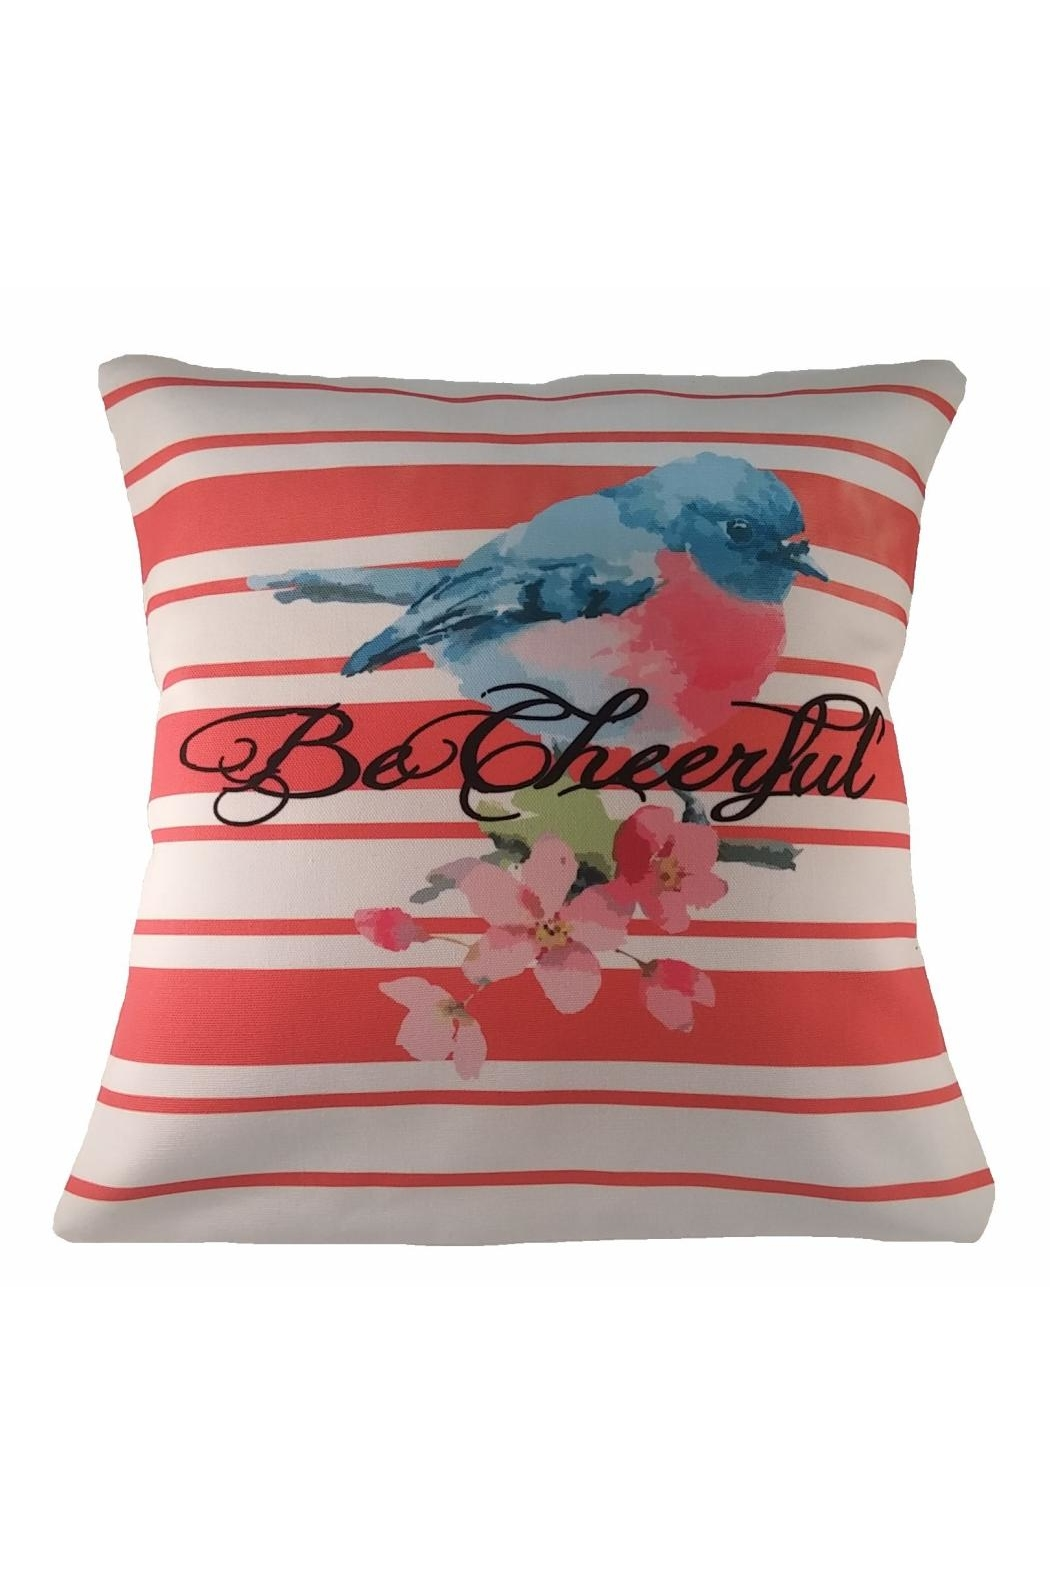 Cherry's Delight Bird and Flower Pillow - Main Image